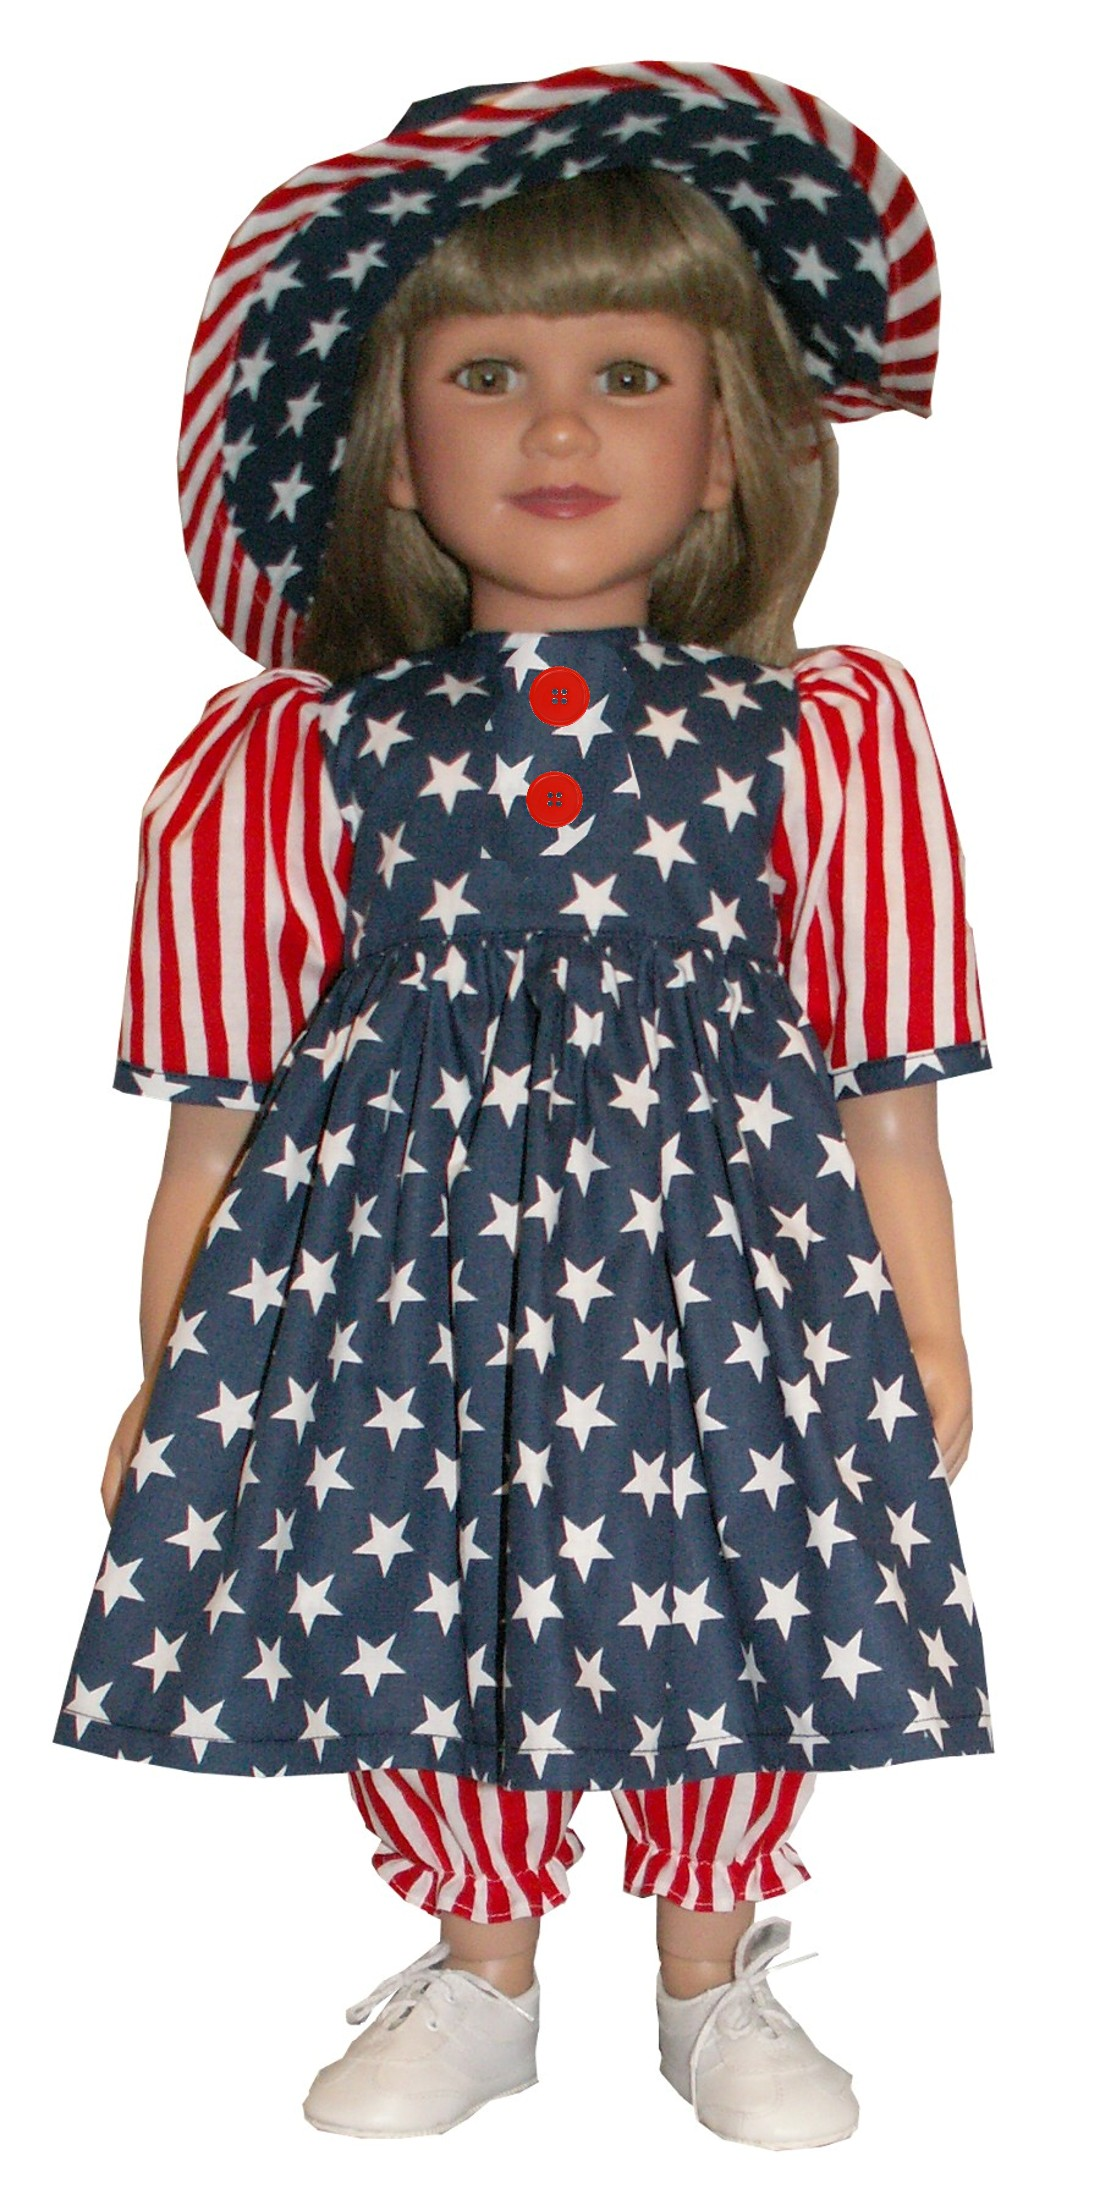 Stars & Stripes Dress Set